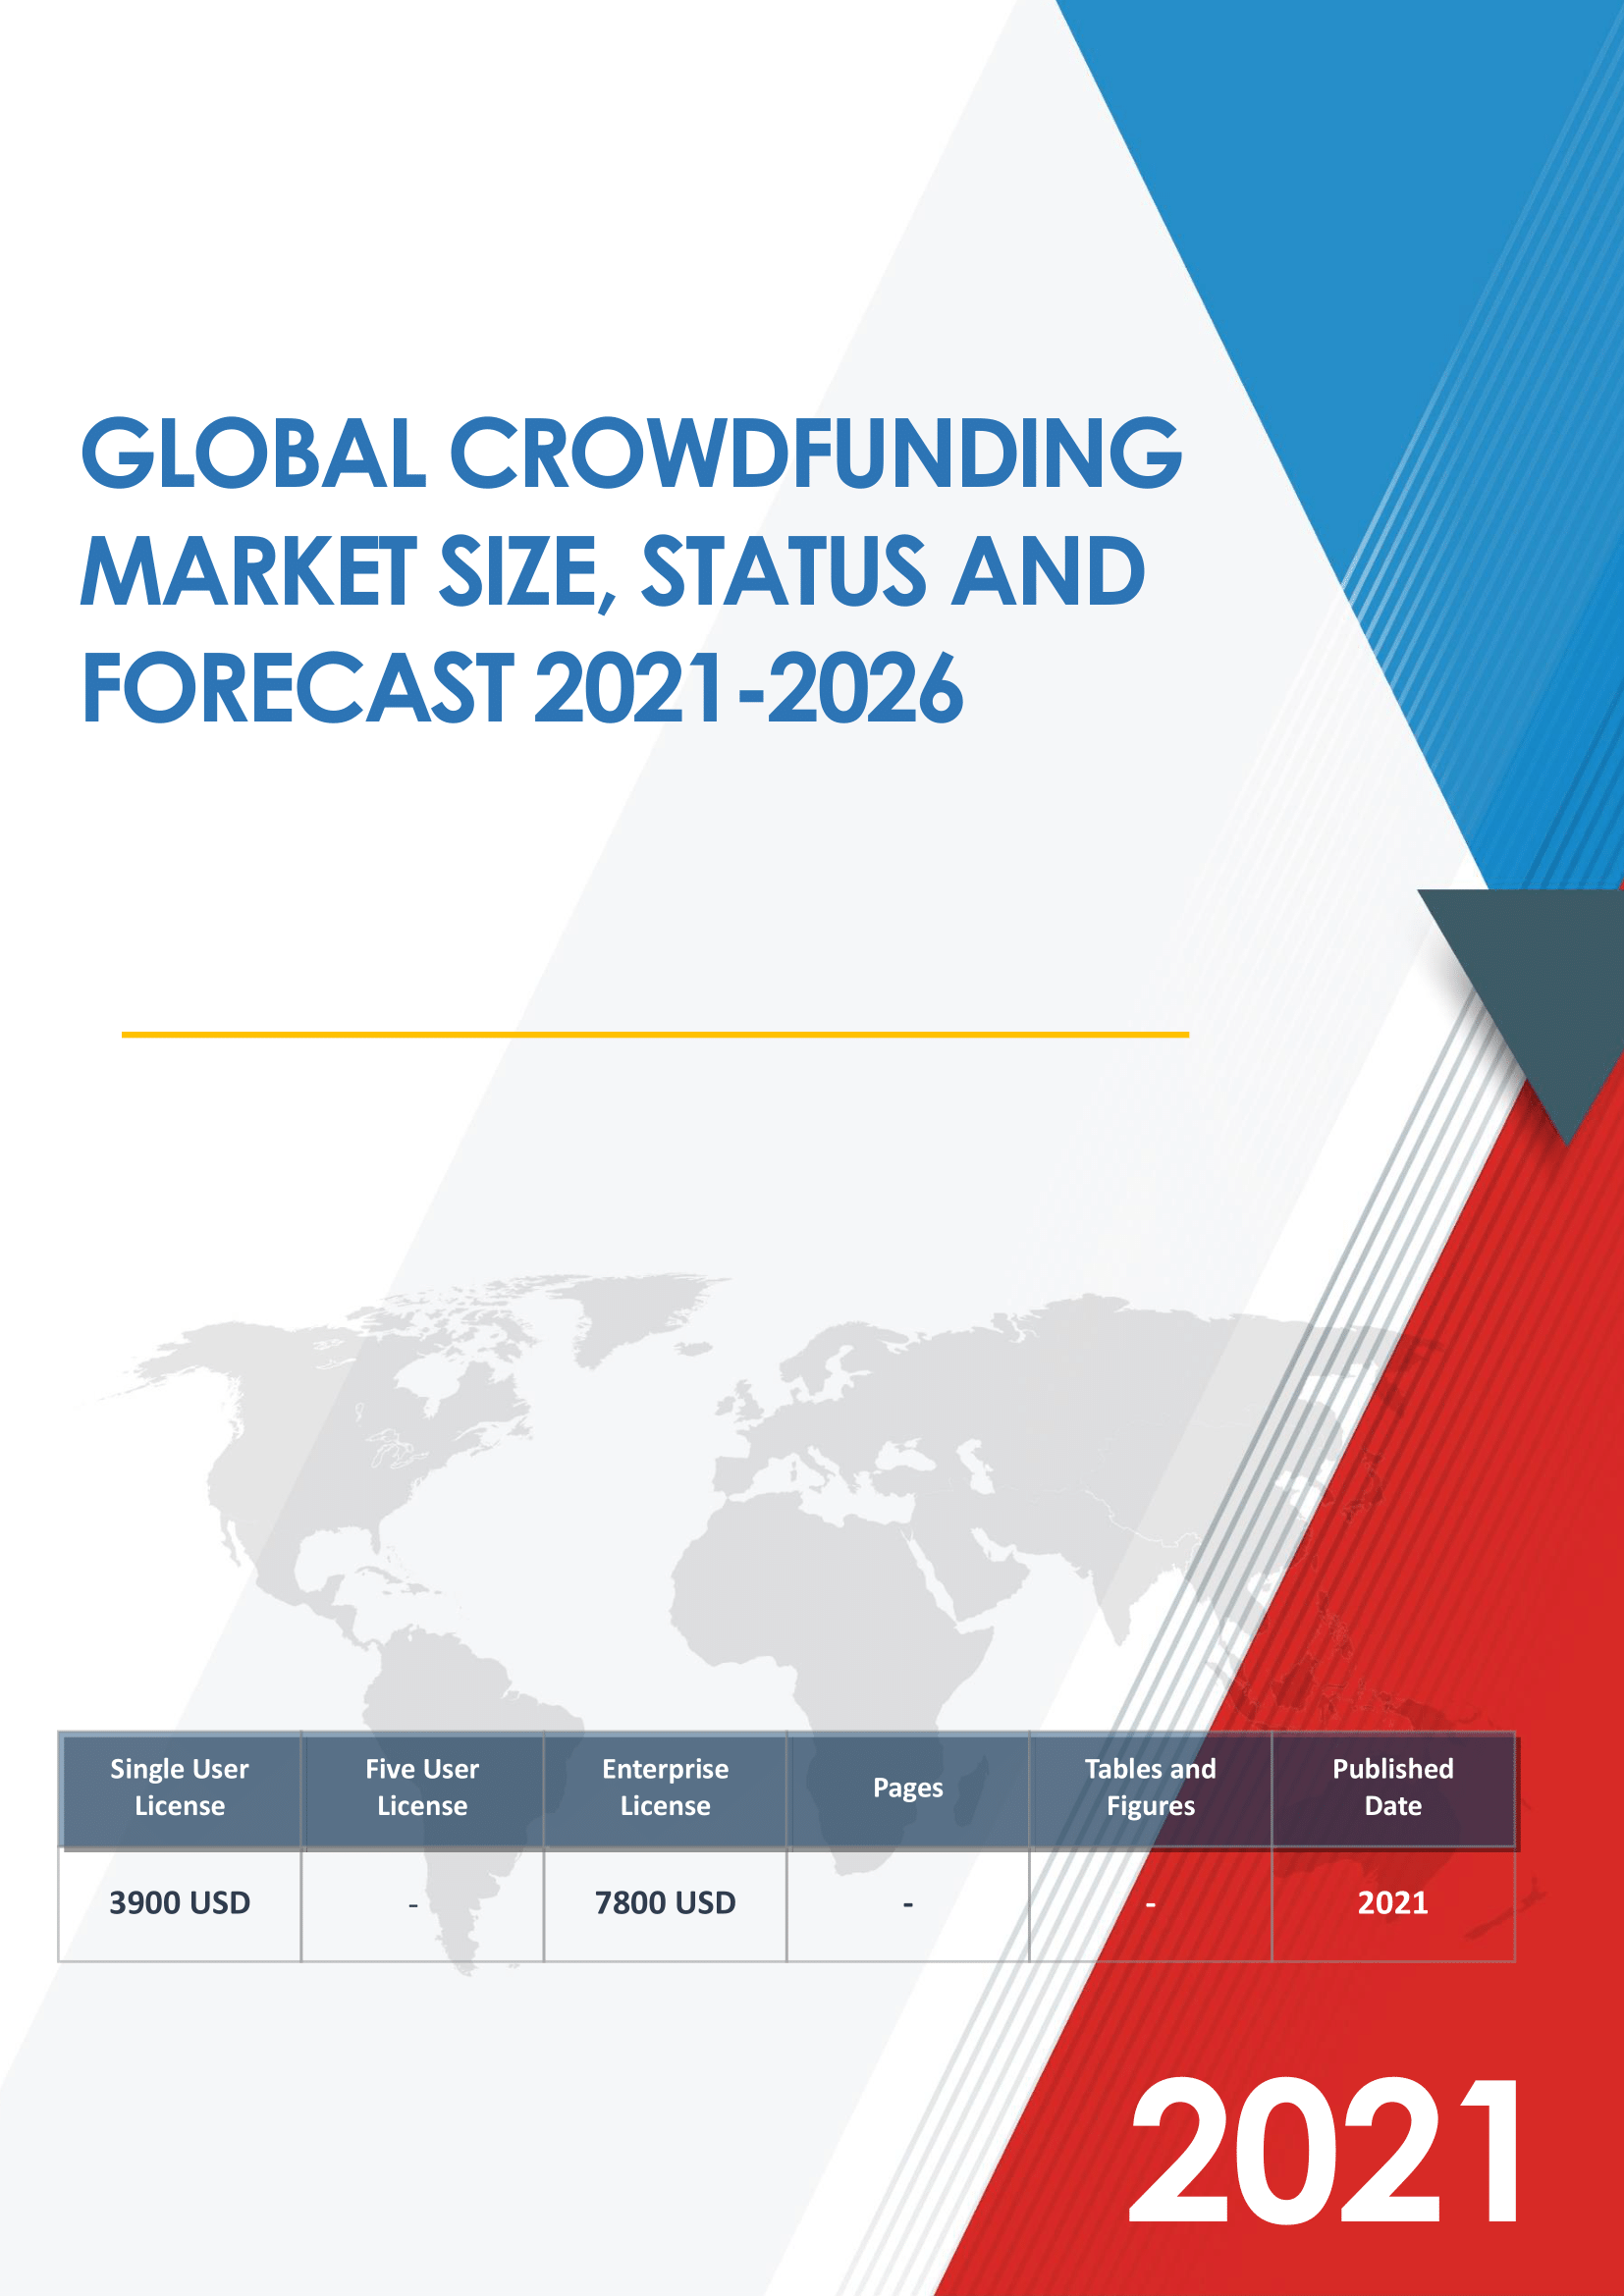 Global Crowdfunding Market Size Status and Forecast 2021 to 2027